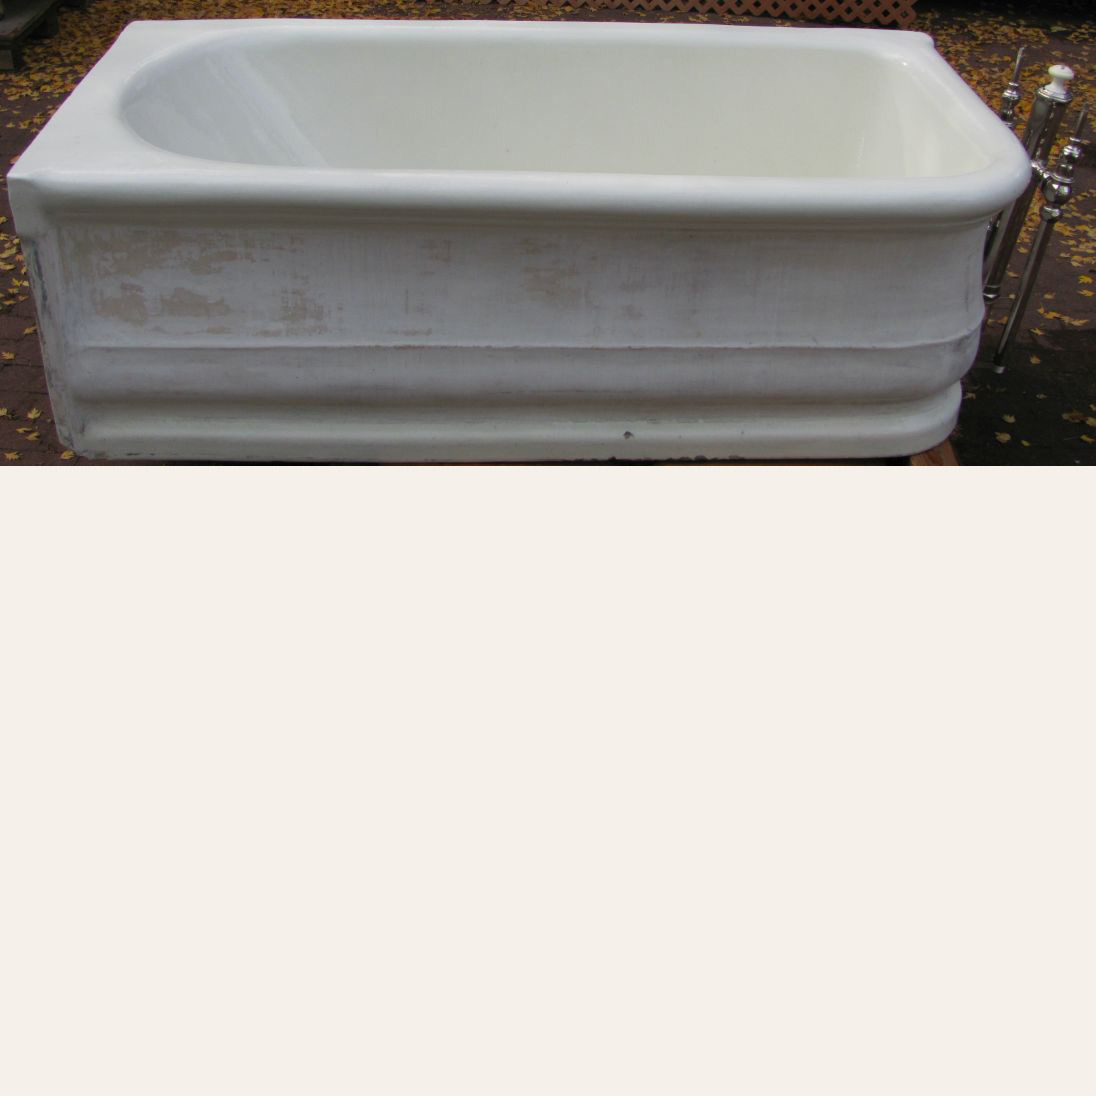 1912 Antique L Wolff Earthenware Tub